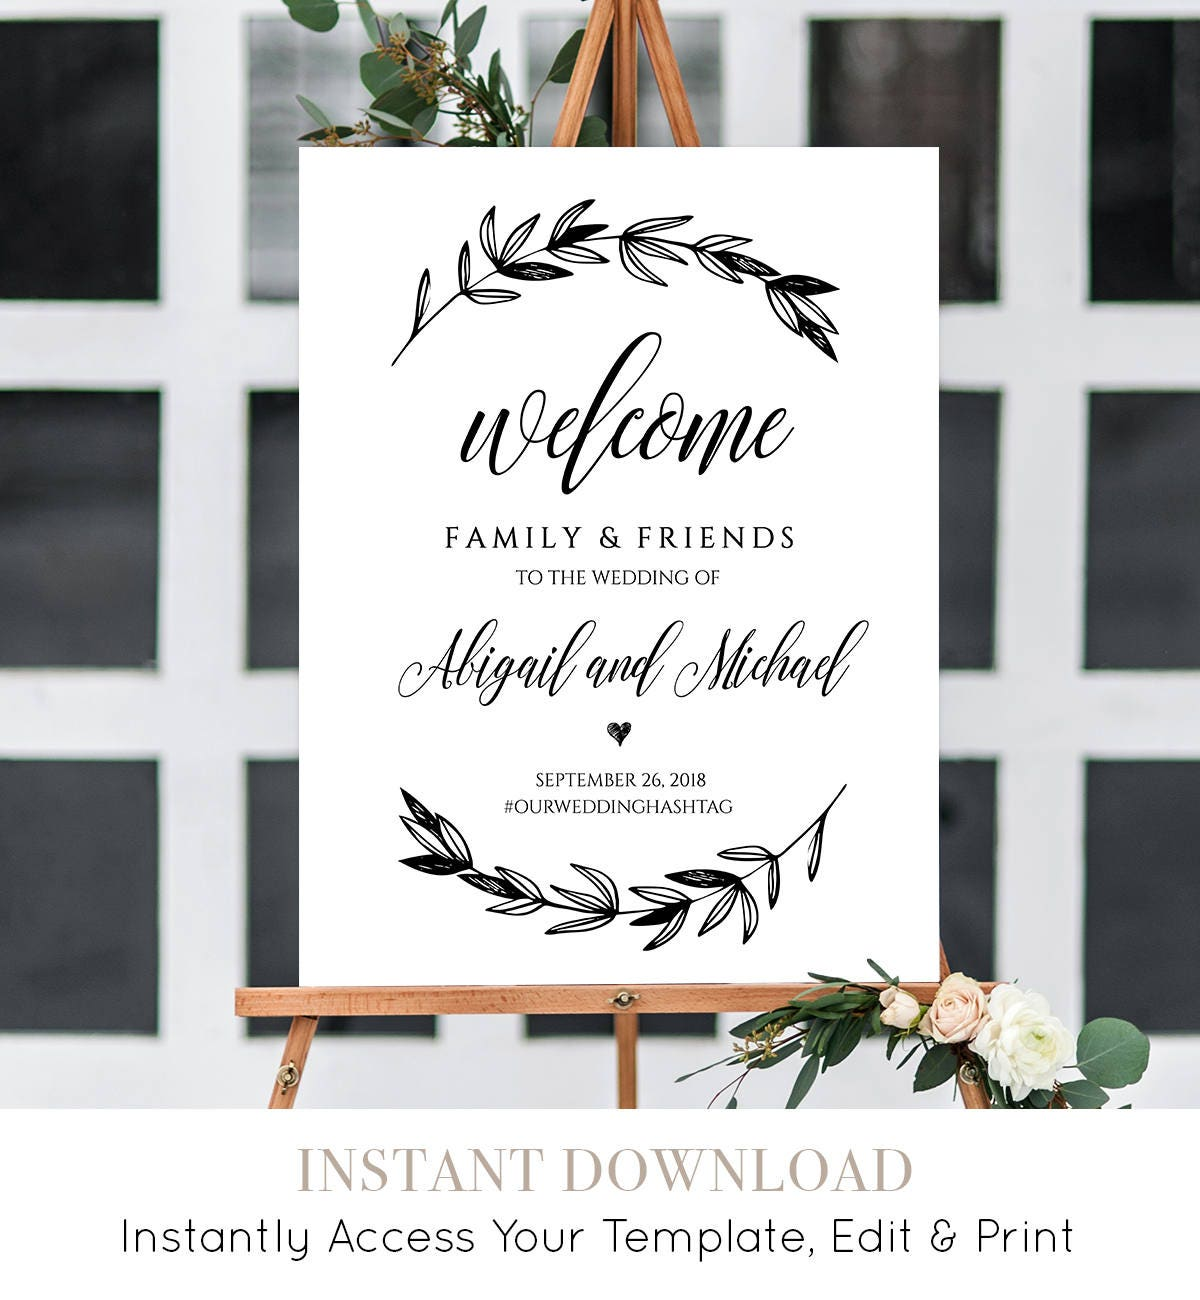 wedding welcome sign template printable poster 100 editable instant download rustic laurels. Black Bedroom Furniture Sets. Home Design Ideas